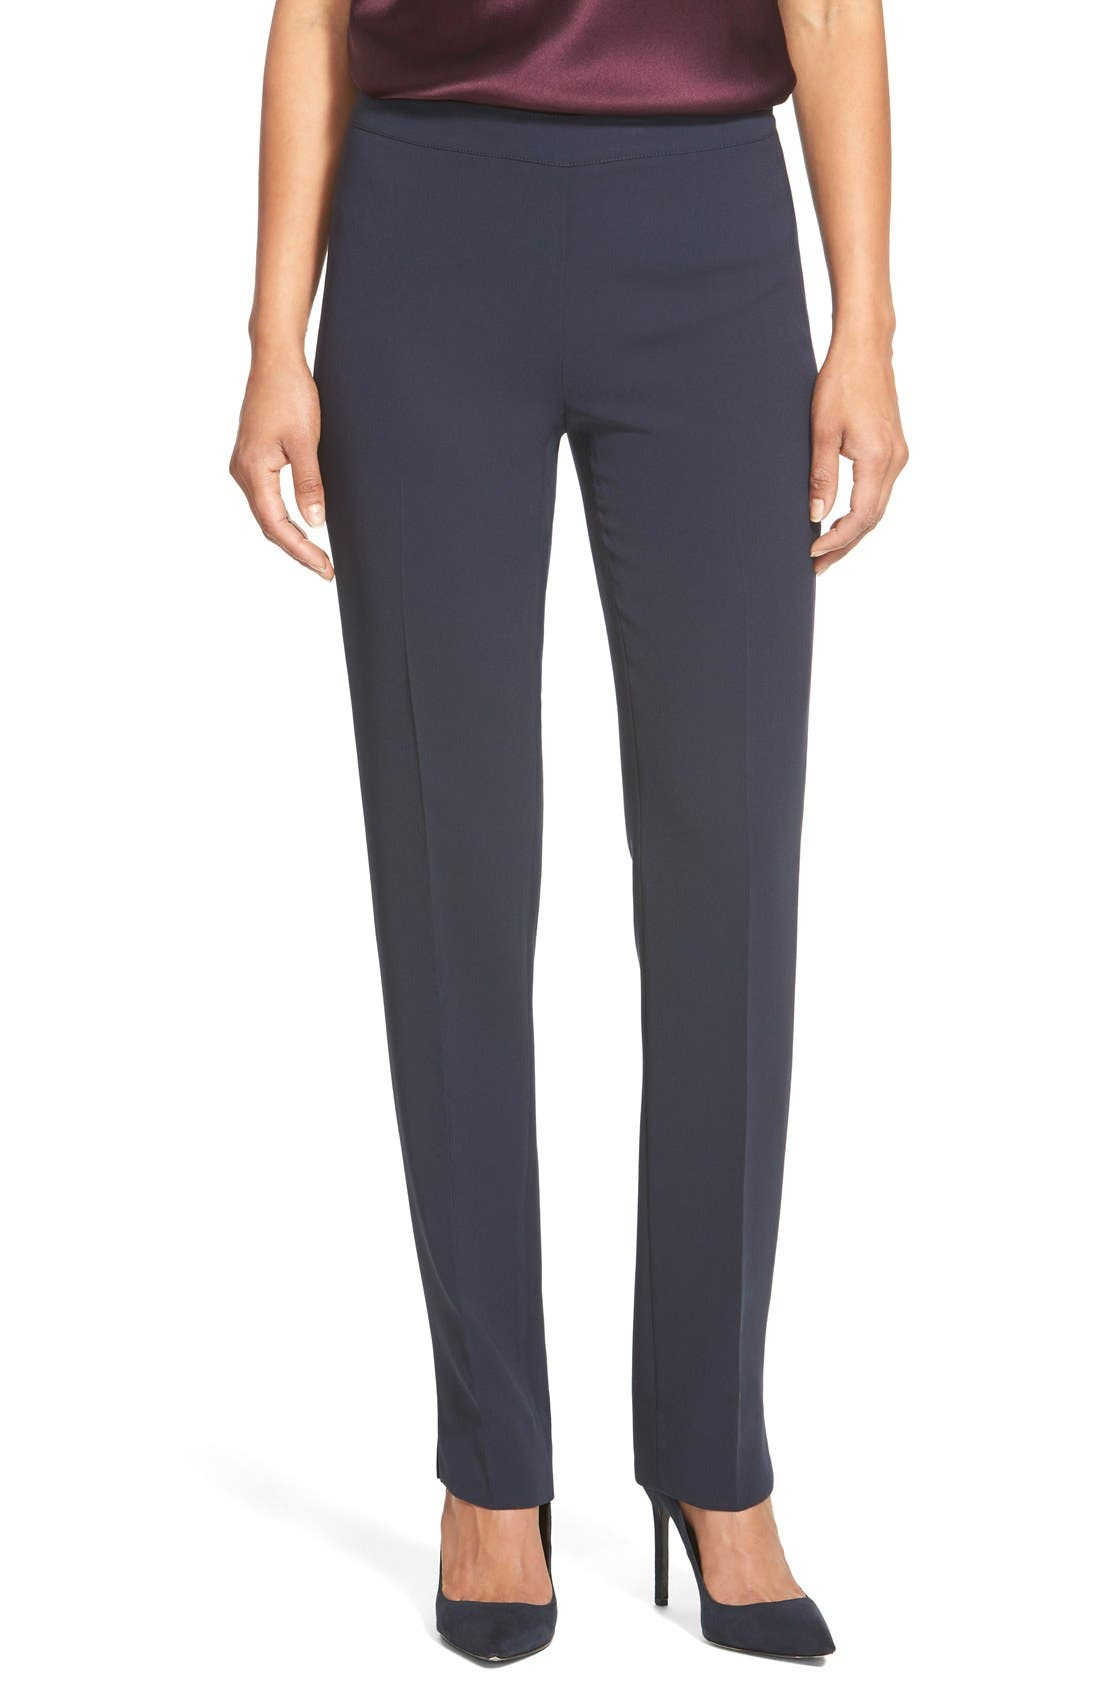 Main Image - Lafayette 148 New York 'Bleecker - Finesse Crepe' Pants (Regular & Petite)